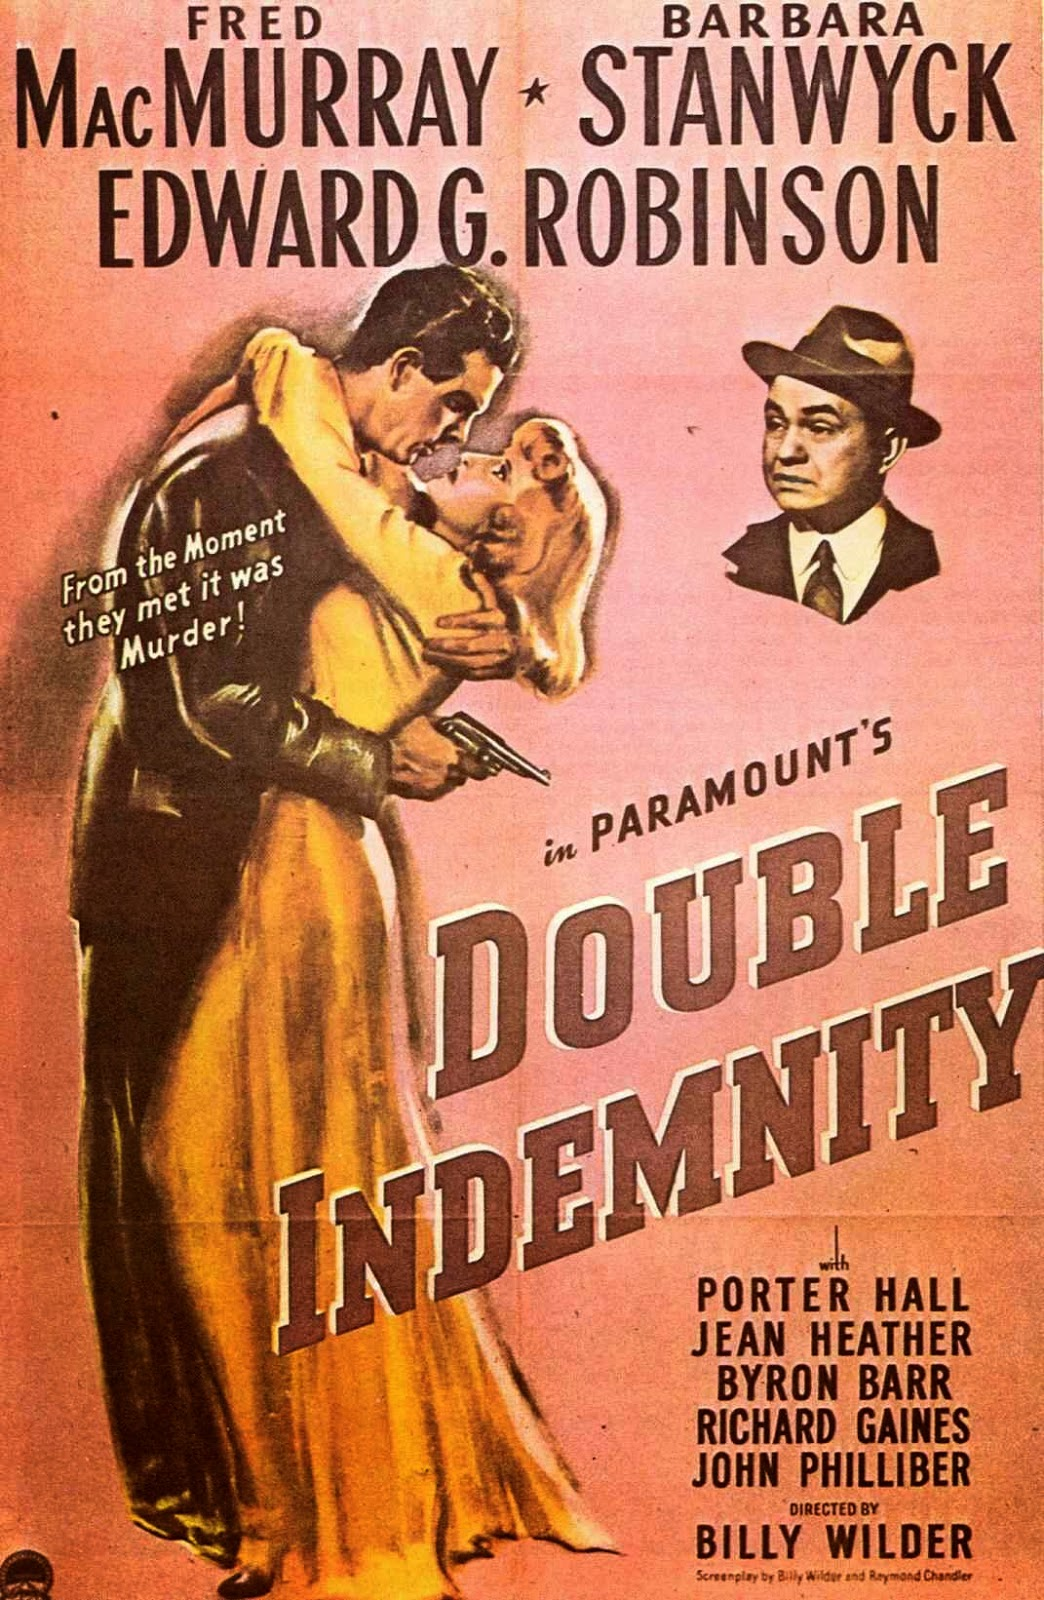 the theme of relationship in billy wilders film double indemnity Notes on film: double indemnity double indemnity director billy wilder double indemnity was not wilder's first film as director but it was the one that.